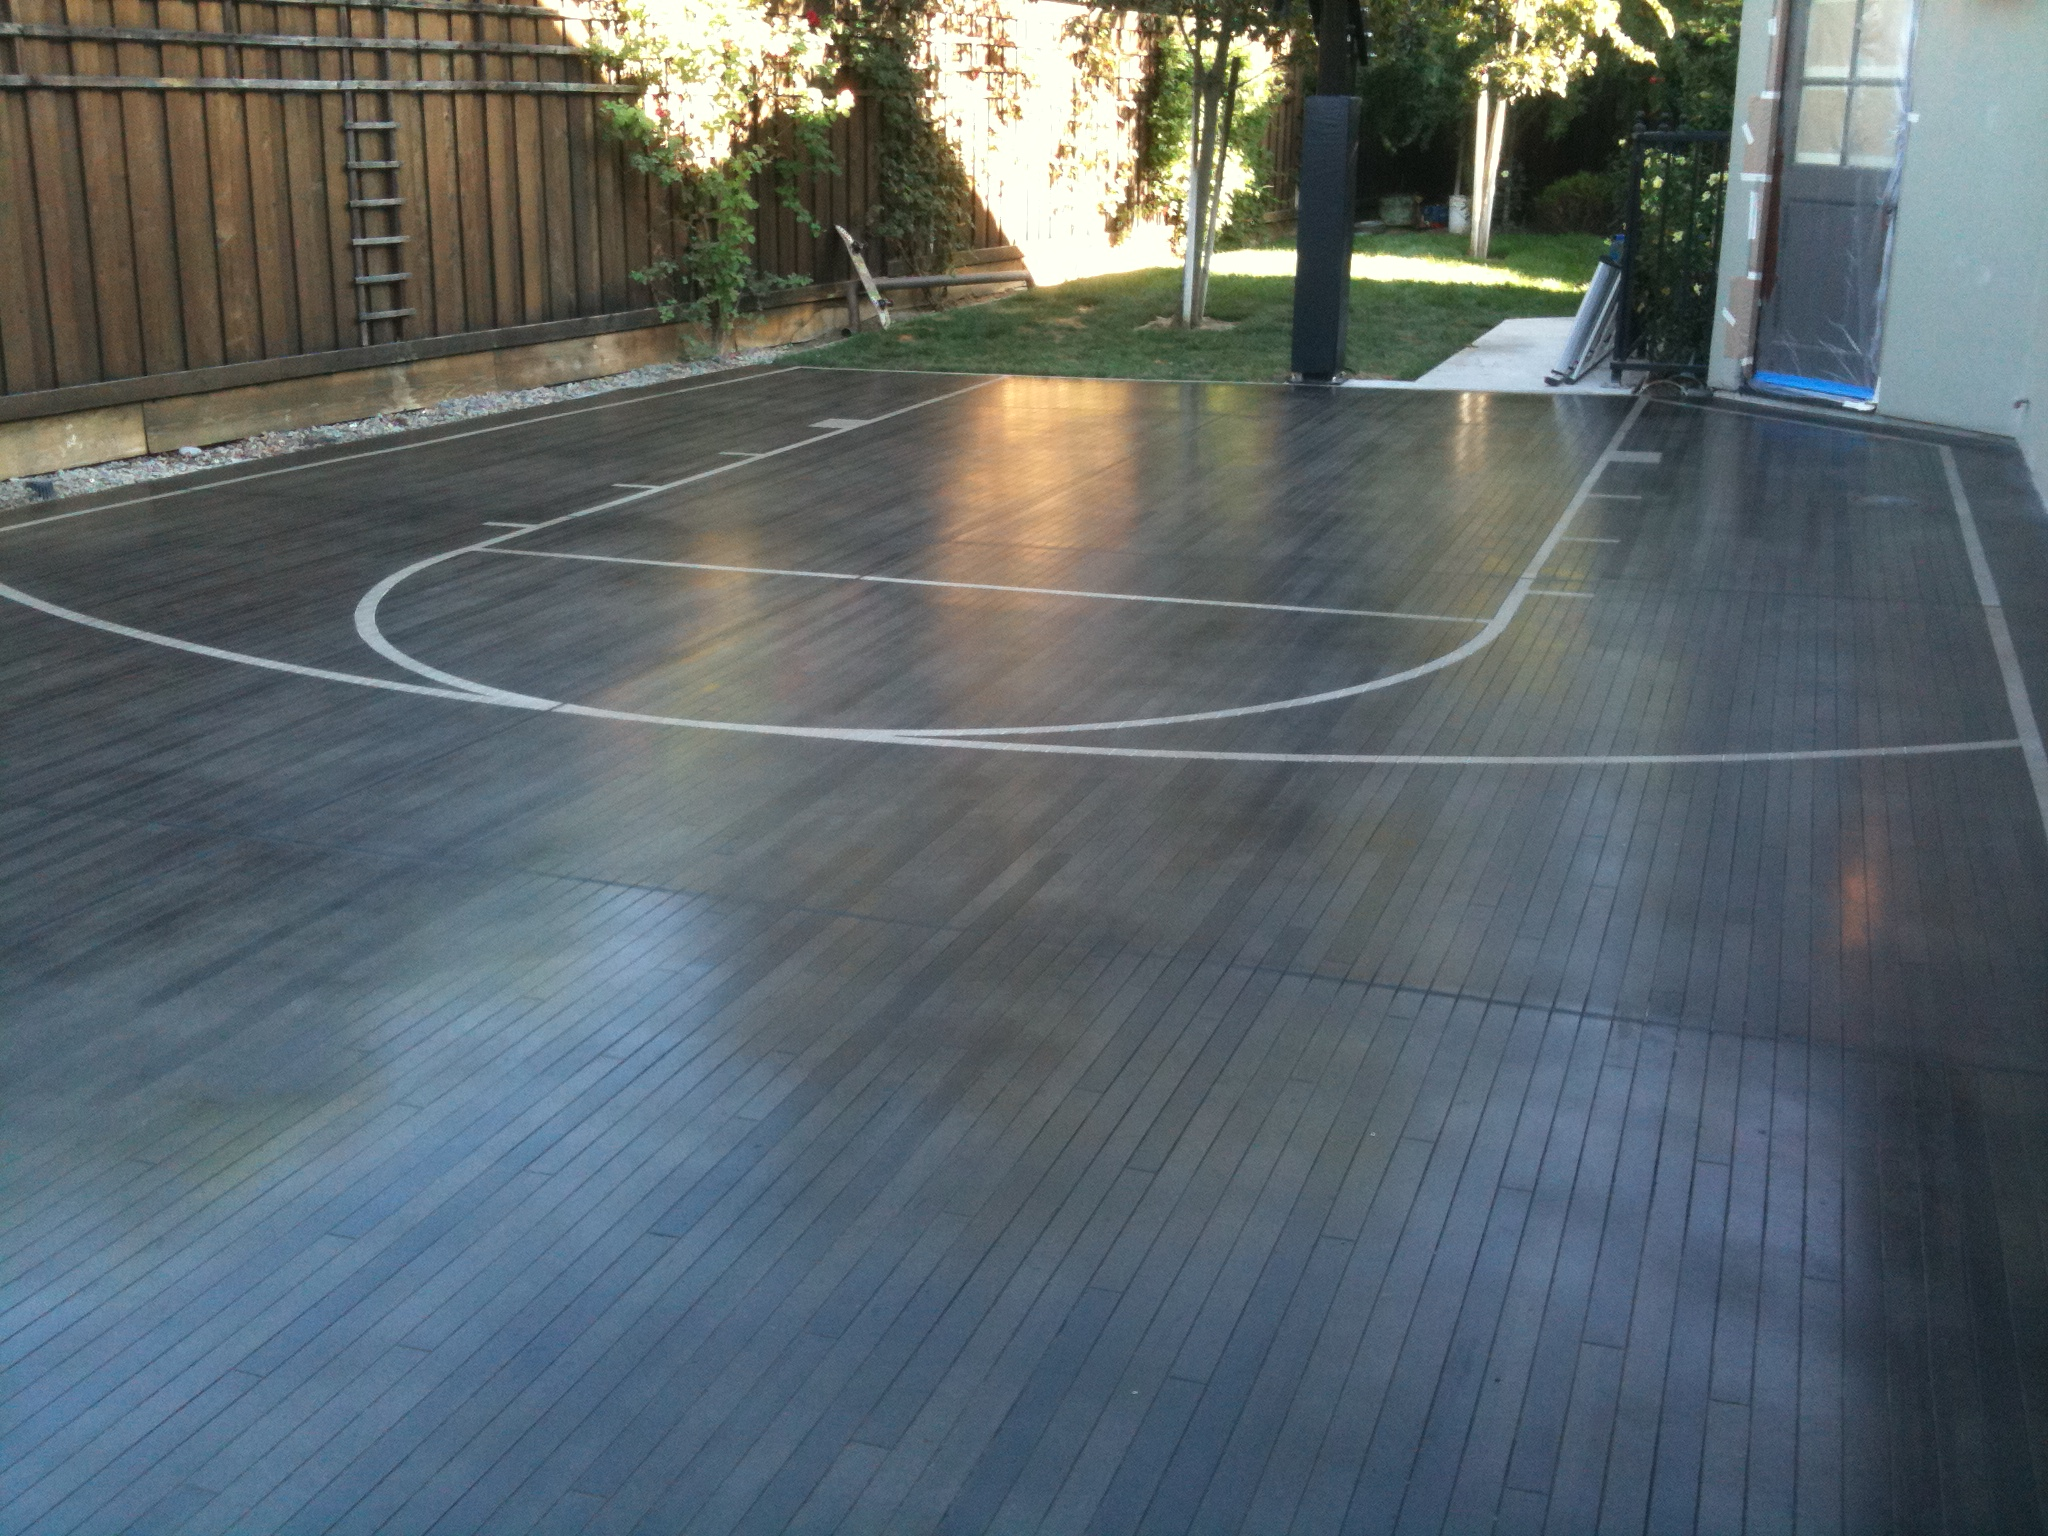 Outdoor Basketball court.JPG